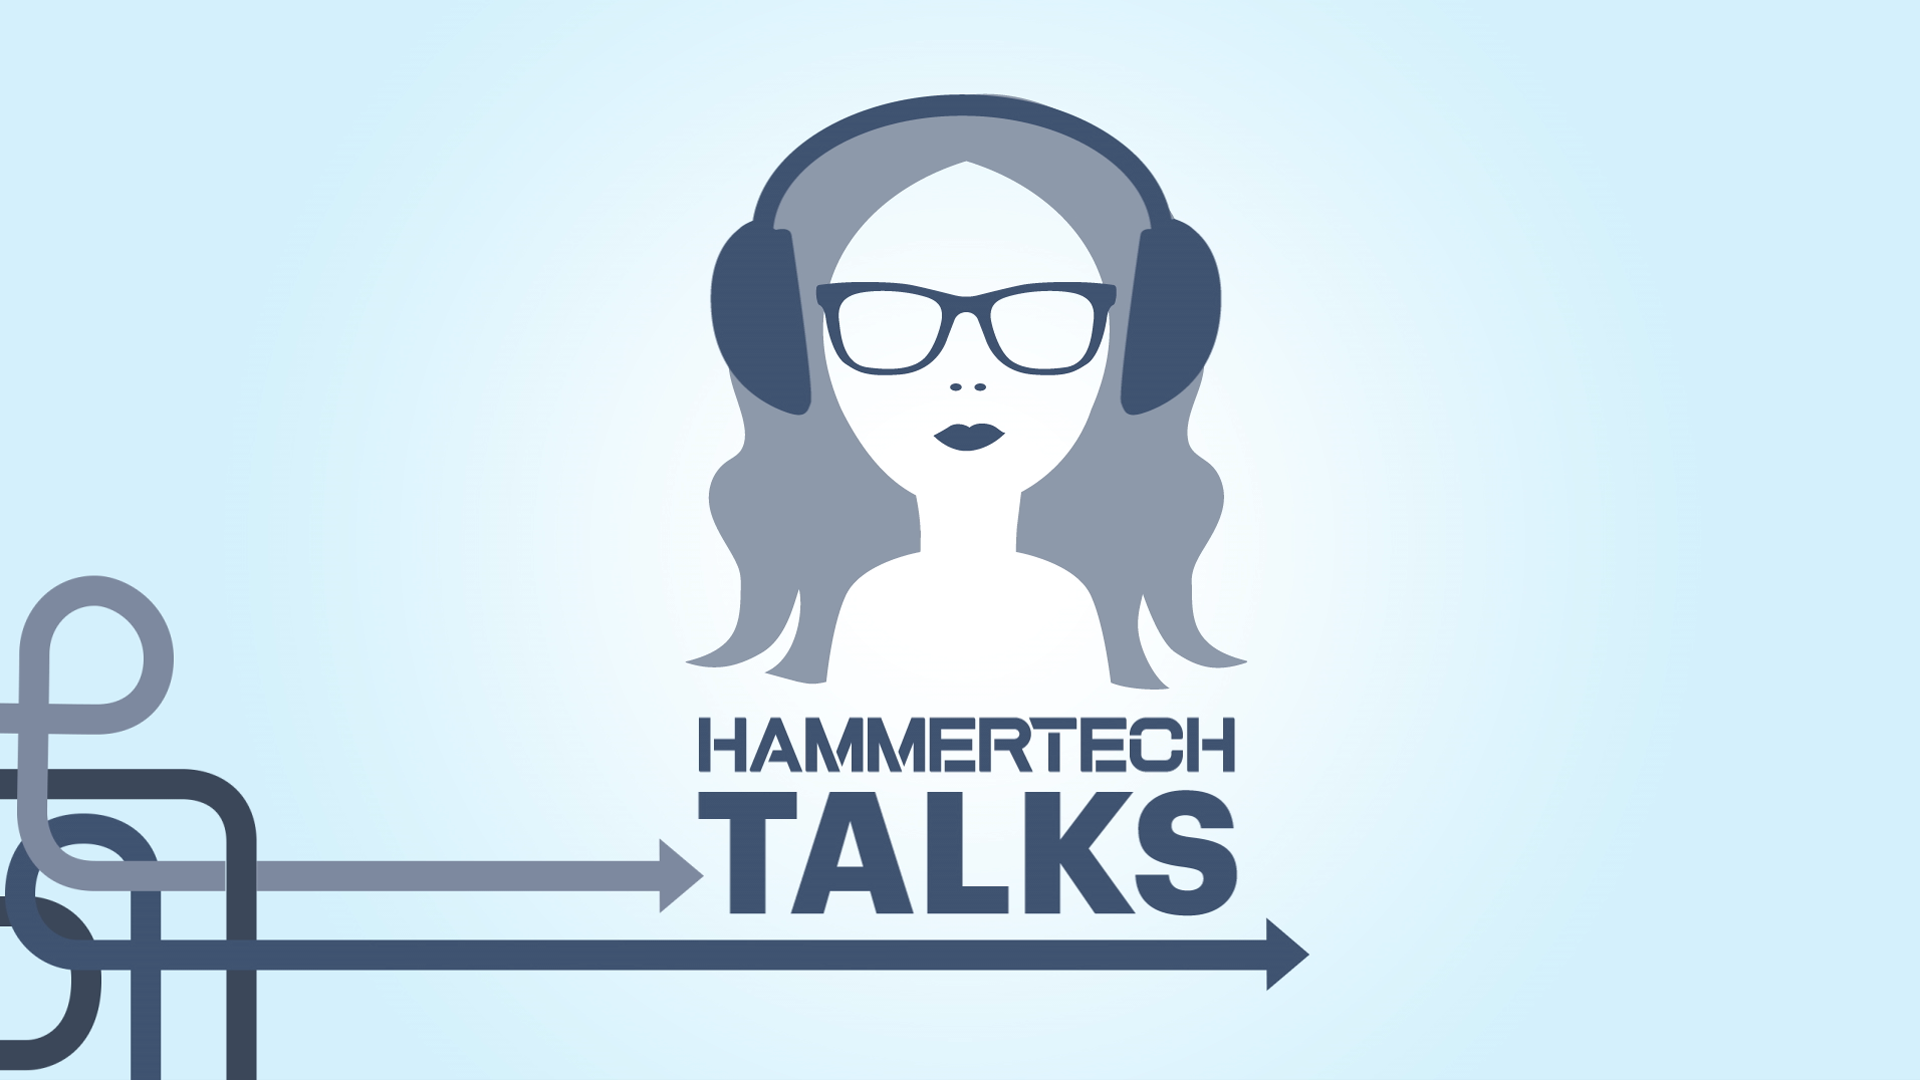 HammerTech Talks